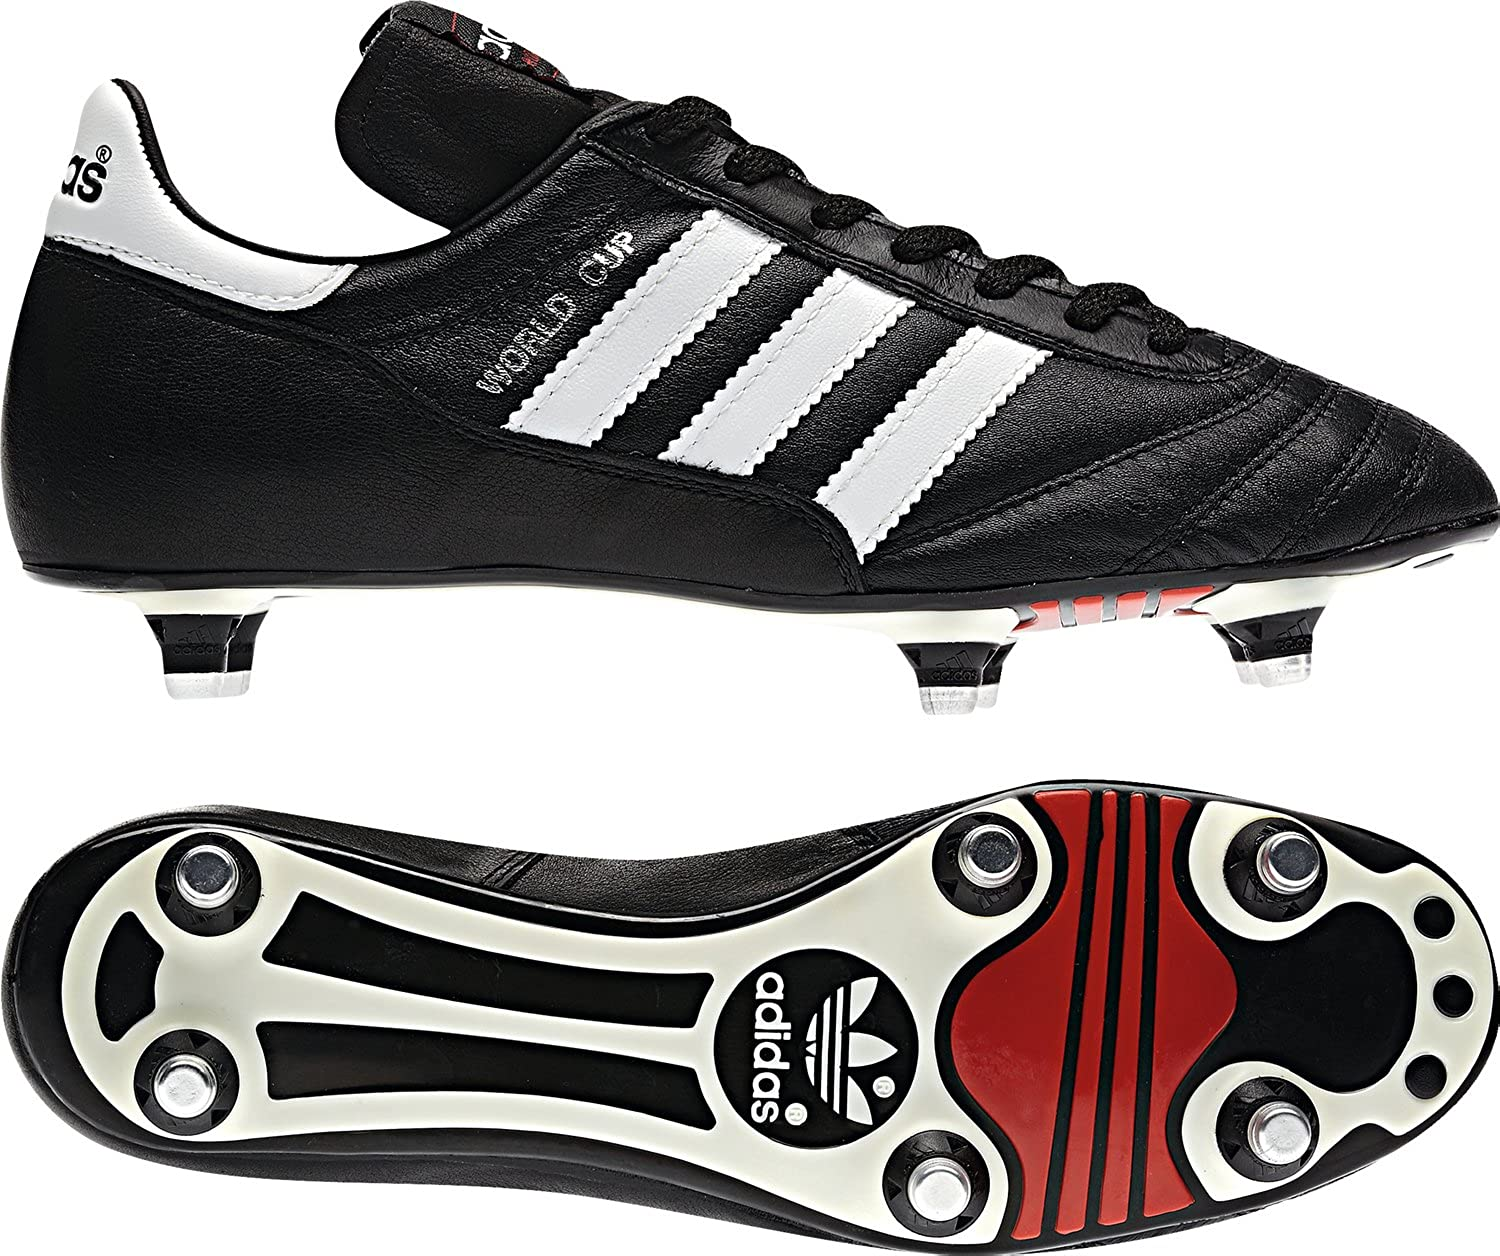 pretty nice 1f8c1 8aed6 adidas - Football Boots - Men s World Cup - Black - 6.5  Amazon.co.uk   Sports   Outdoors